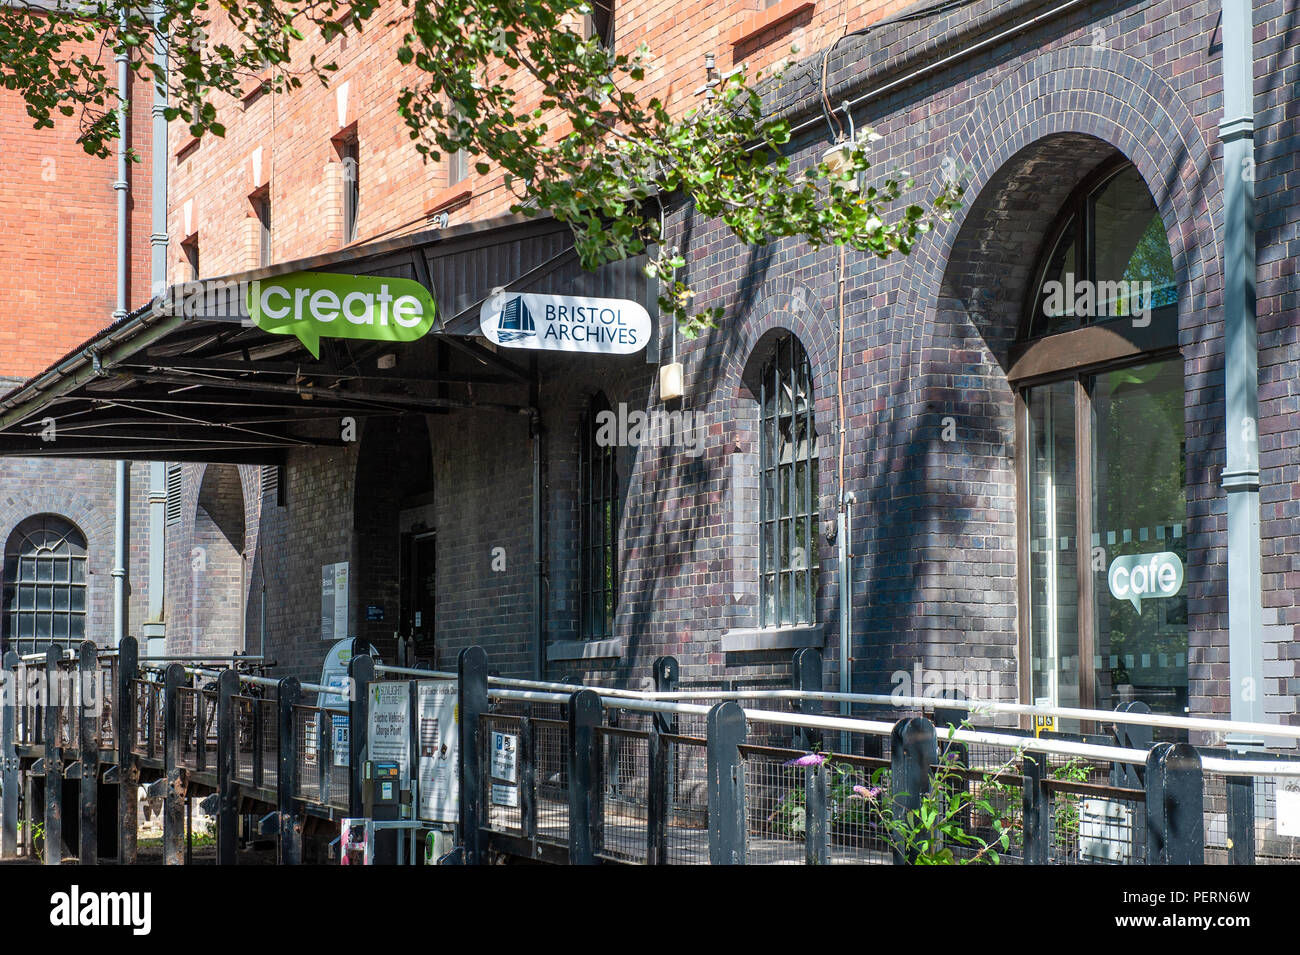 Entrance to Create Centre and Bristol Archives, Bristol, UK. - Stock Image